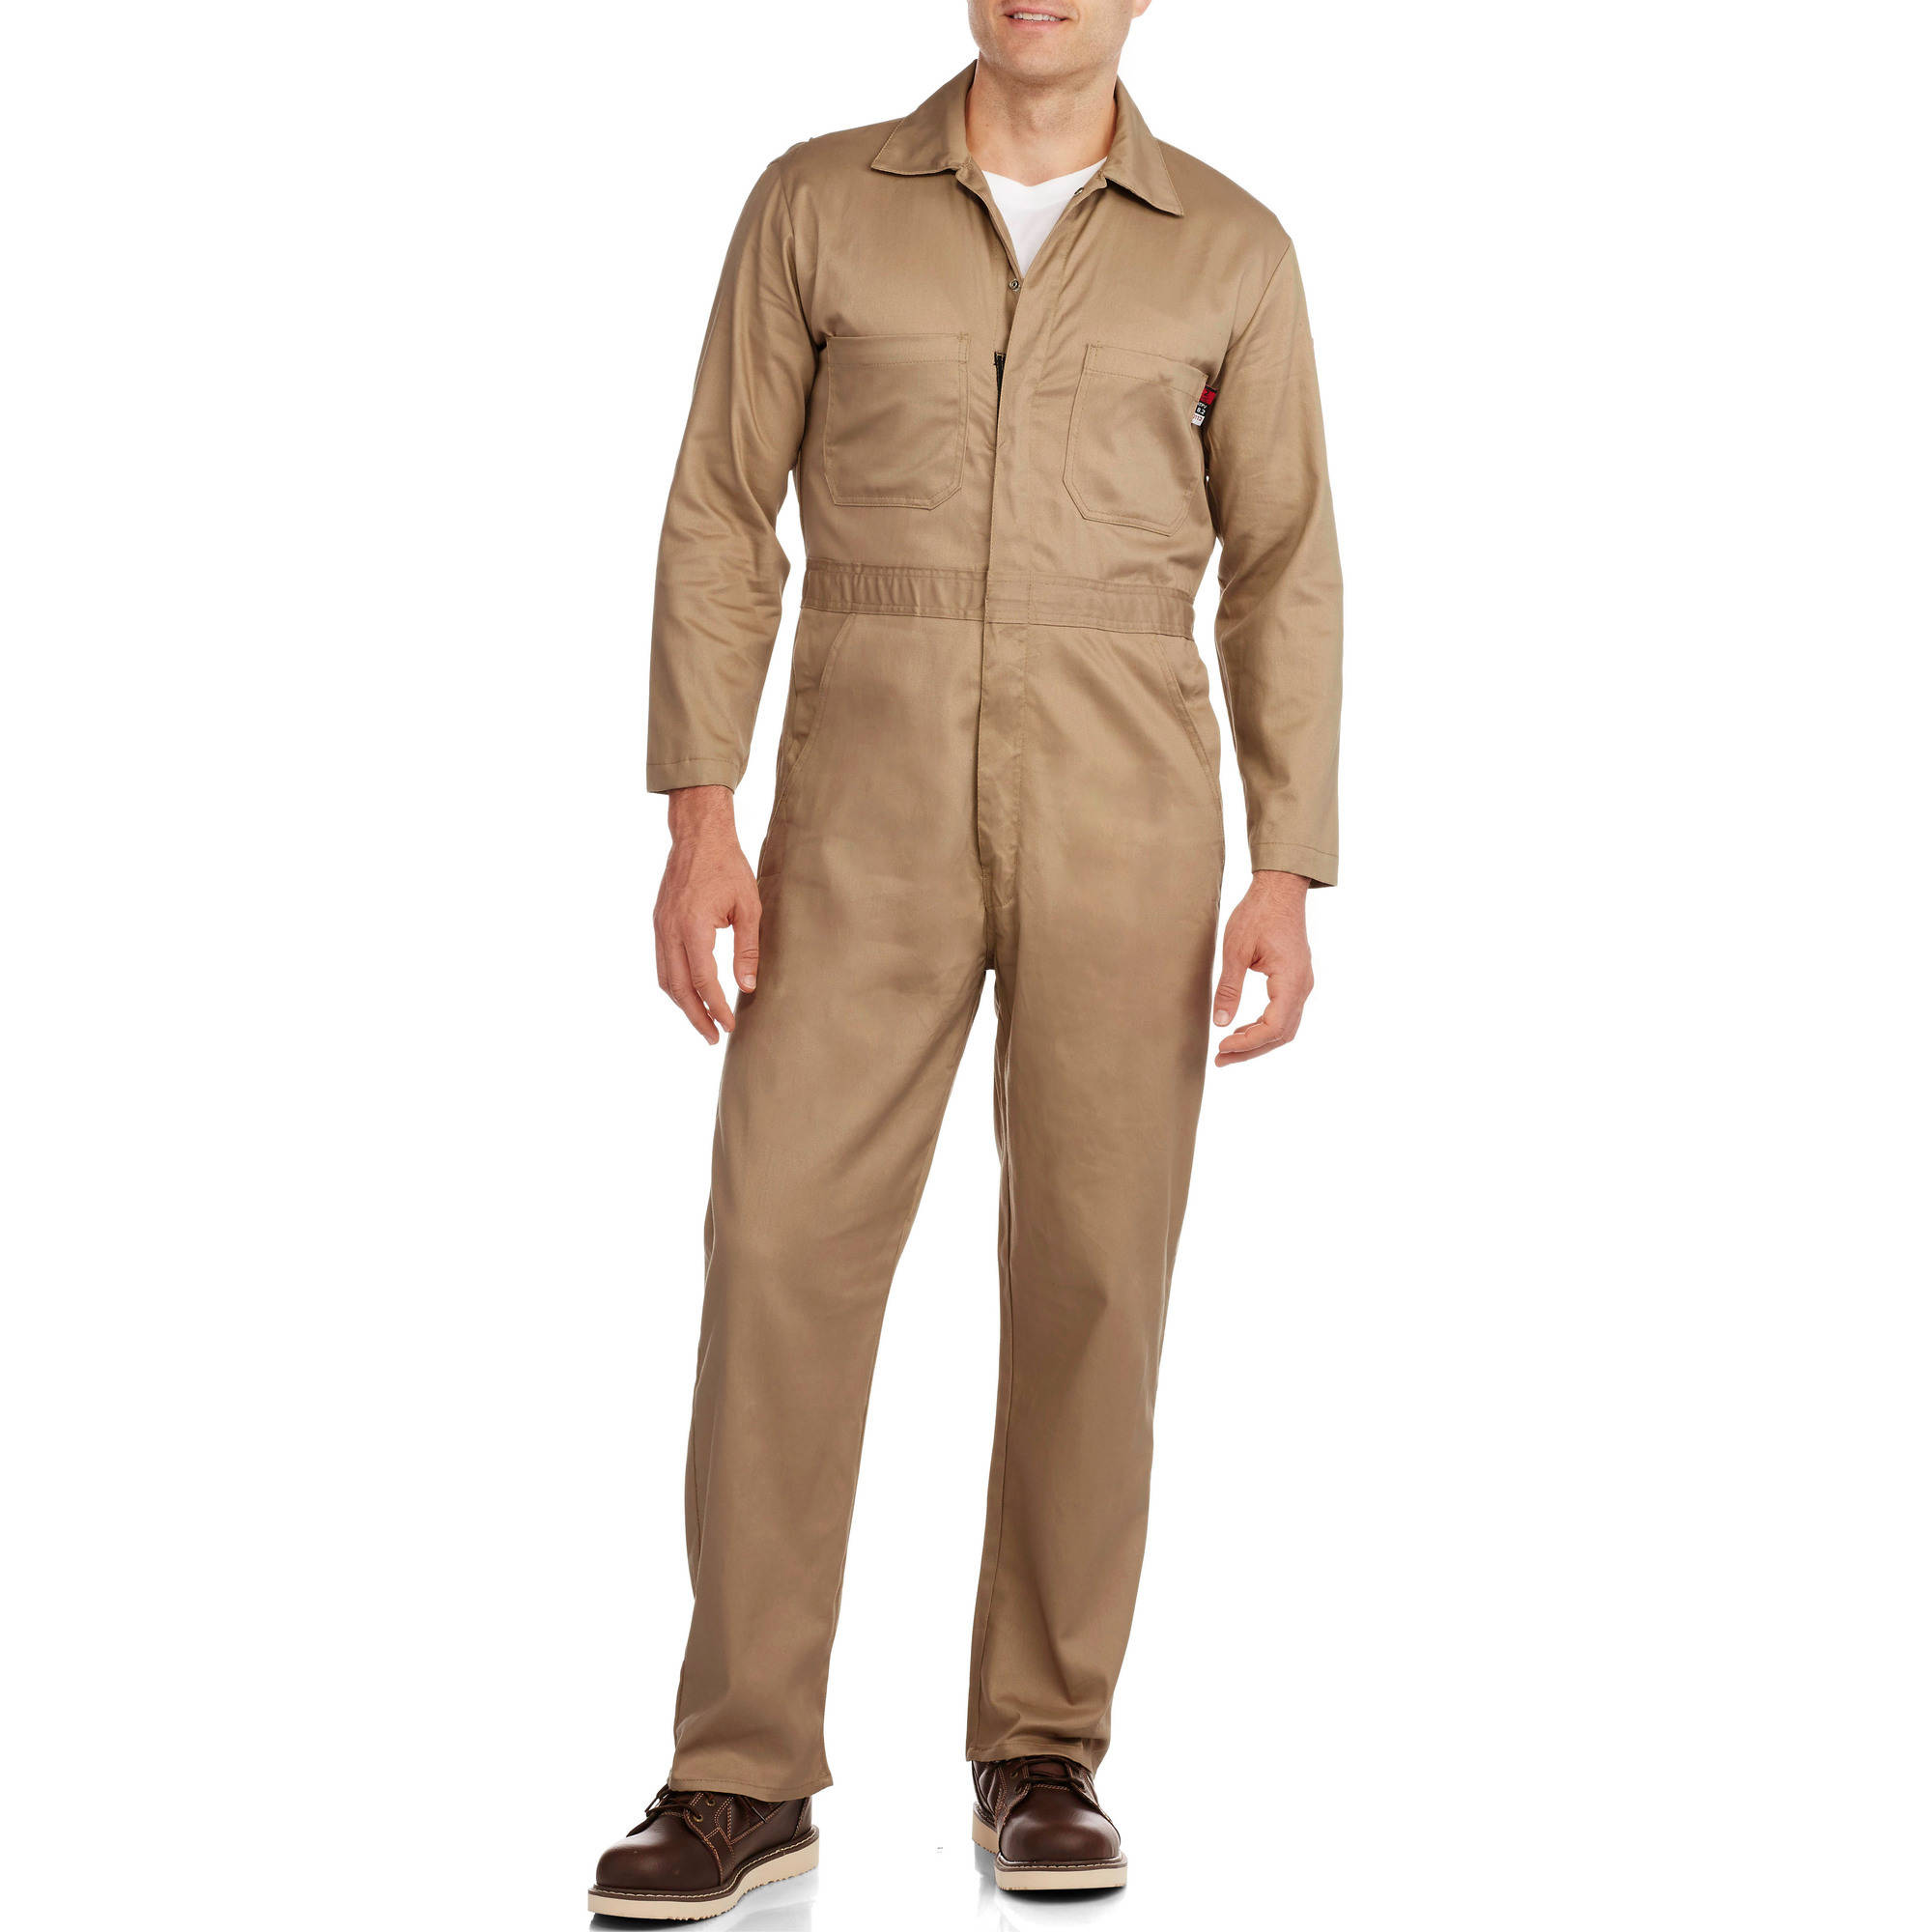 Walls FR Men's Flame Resistant Contractor Coverall, HRC Level 2 by Walls